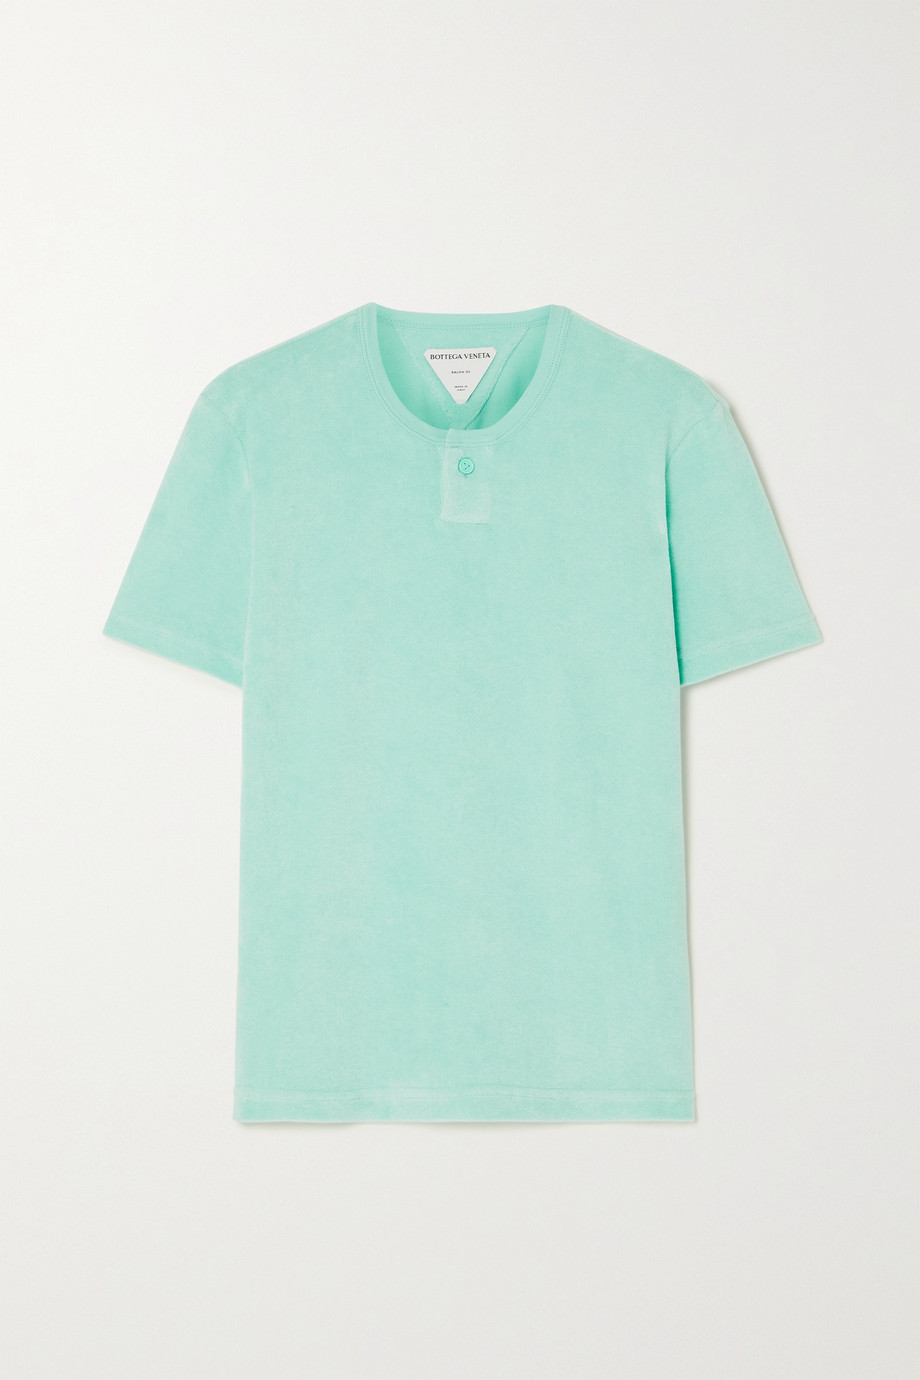 Bottega Veneta Cotton-blend terry T-shirt